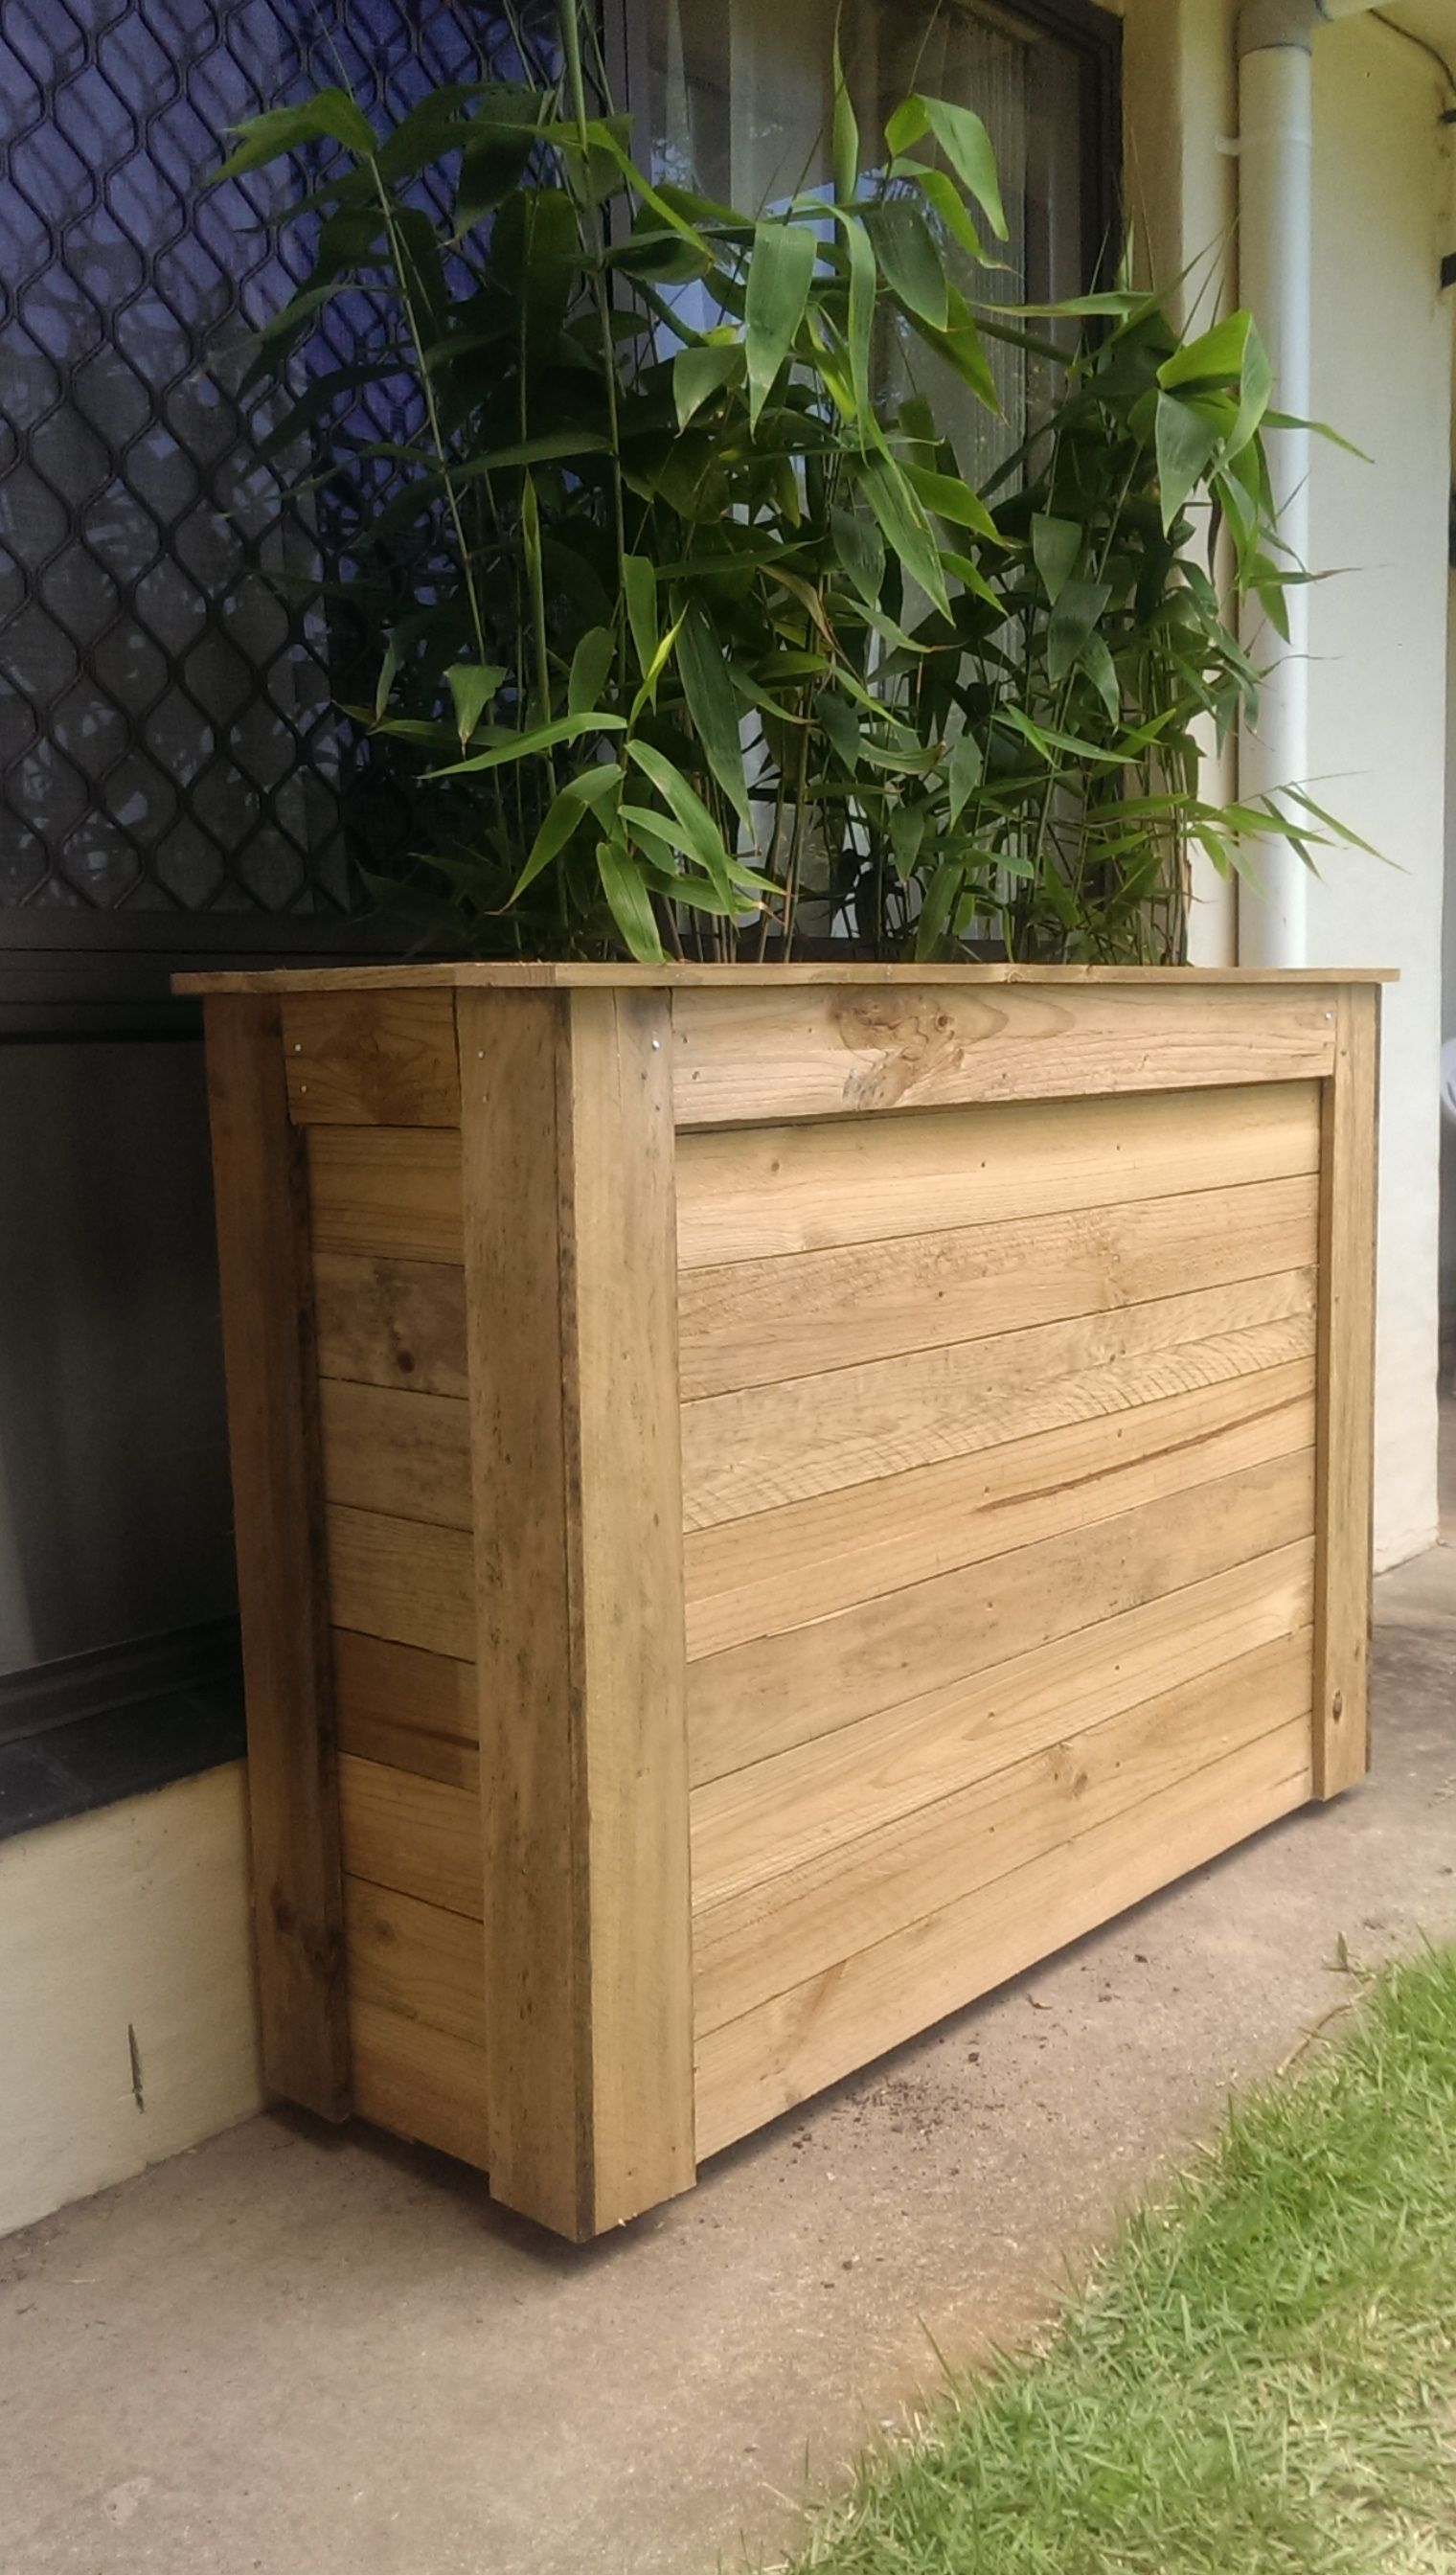 Tall Planter Box Tall Outdoor Planters Outdoor Planter Boxes Diy Outdoor Planter Boxes